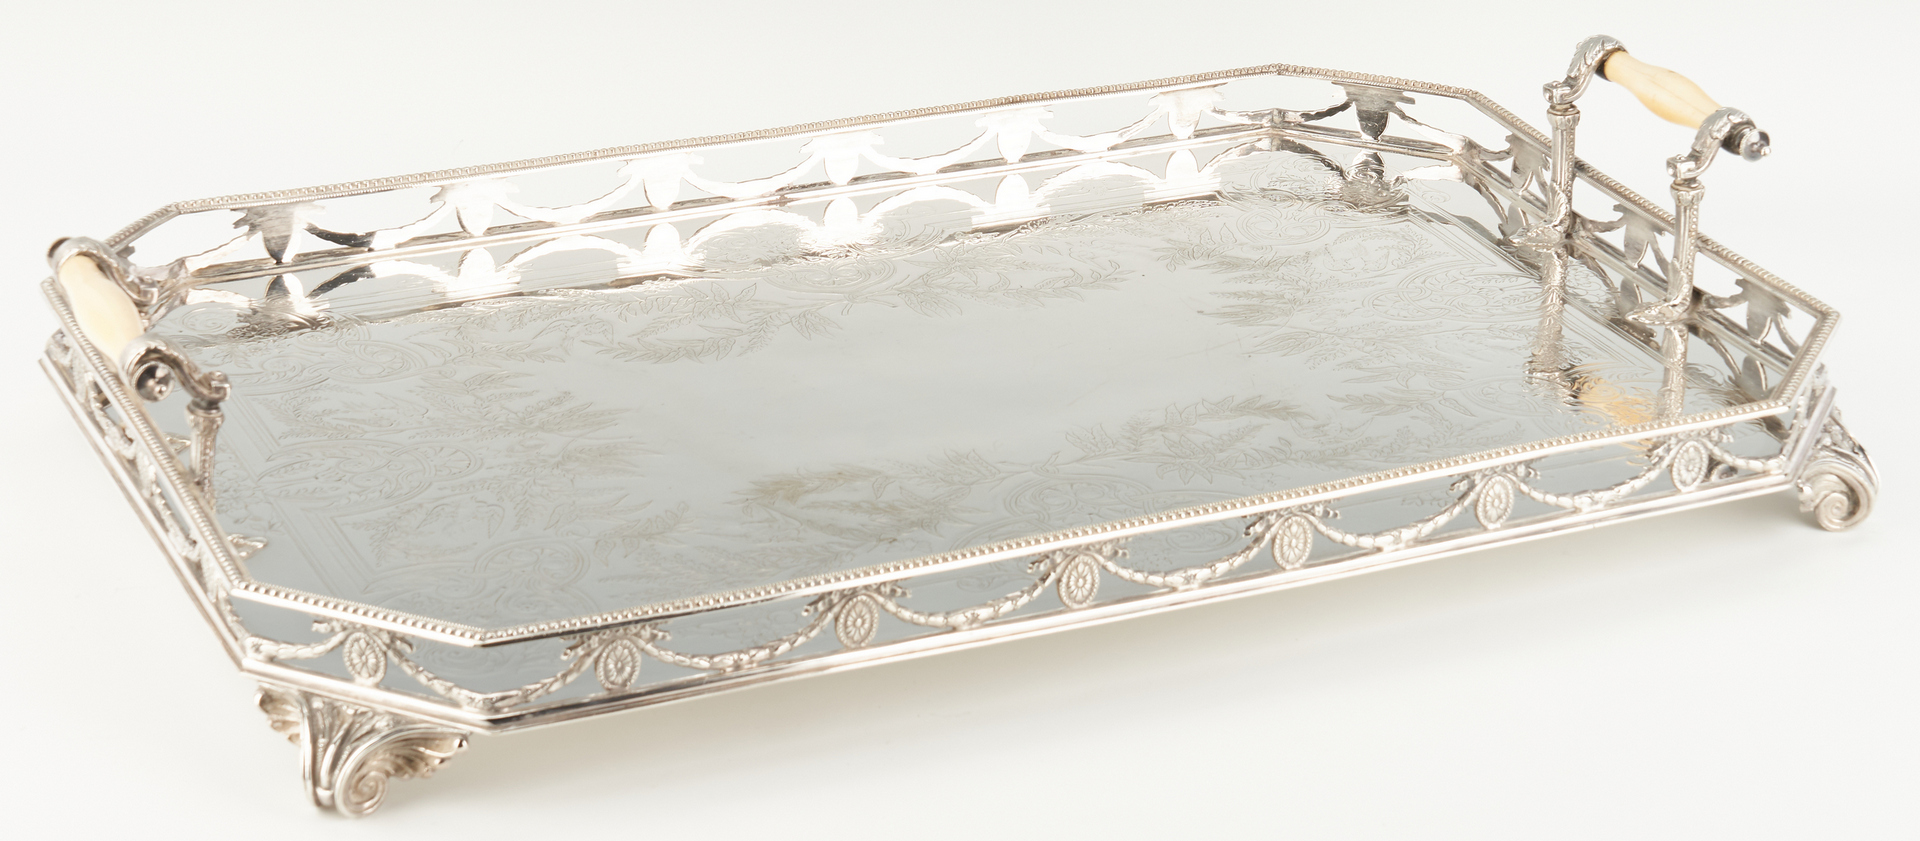 Lot 959: Neoclassical Silverplated Gallery Tray